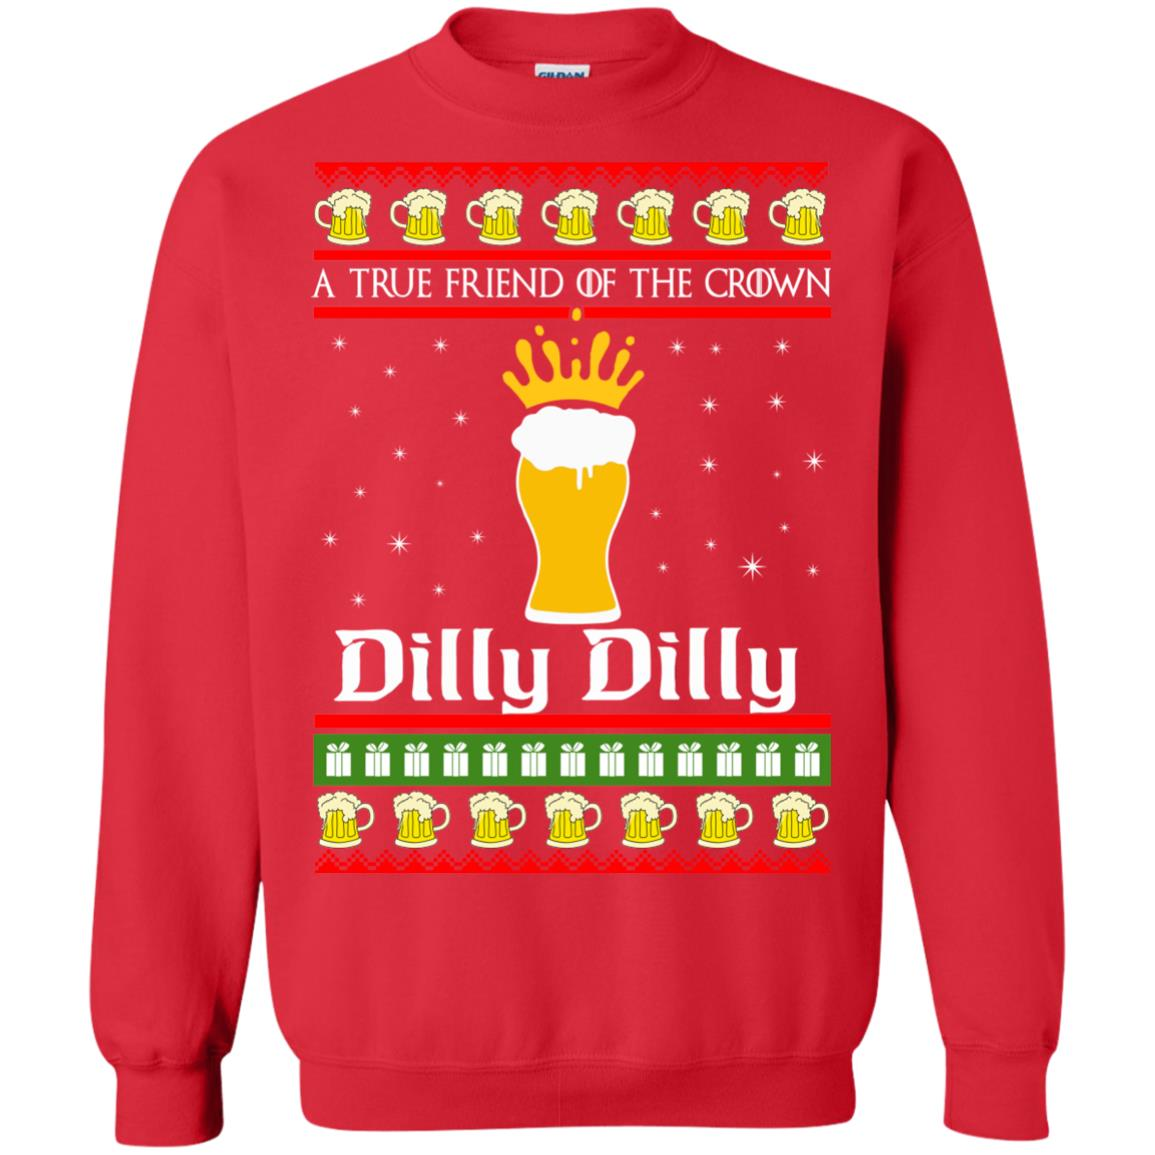 image 6326 - A True Friend Of The Crown Dilly Dilly Christmas Sweater, Hoodie